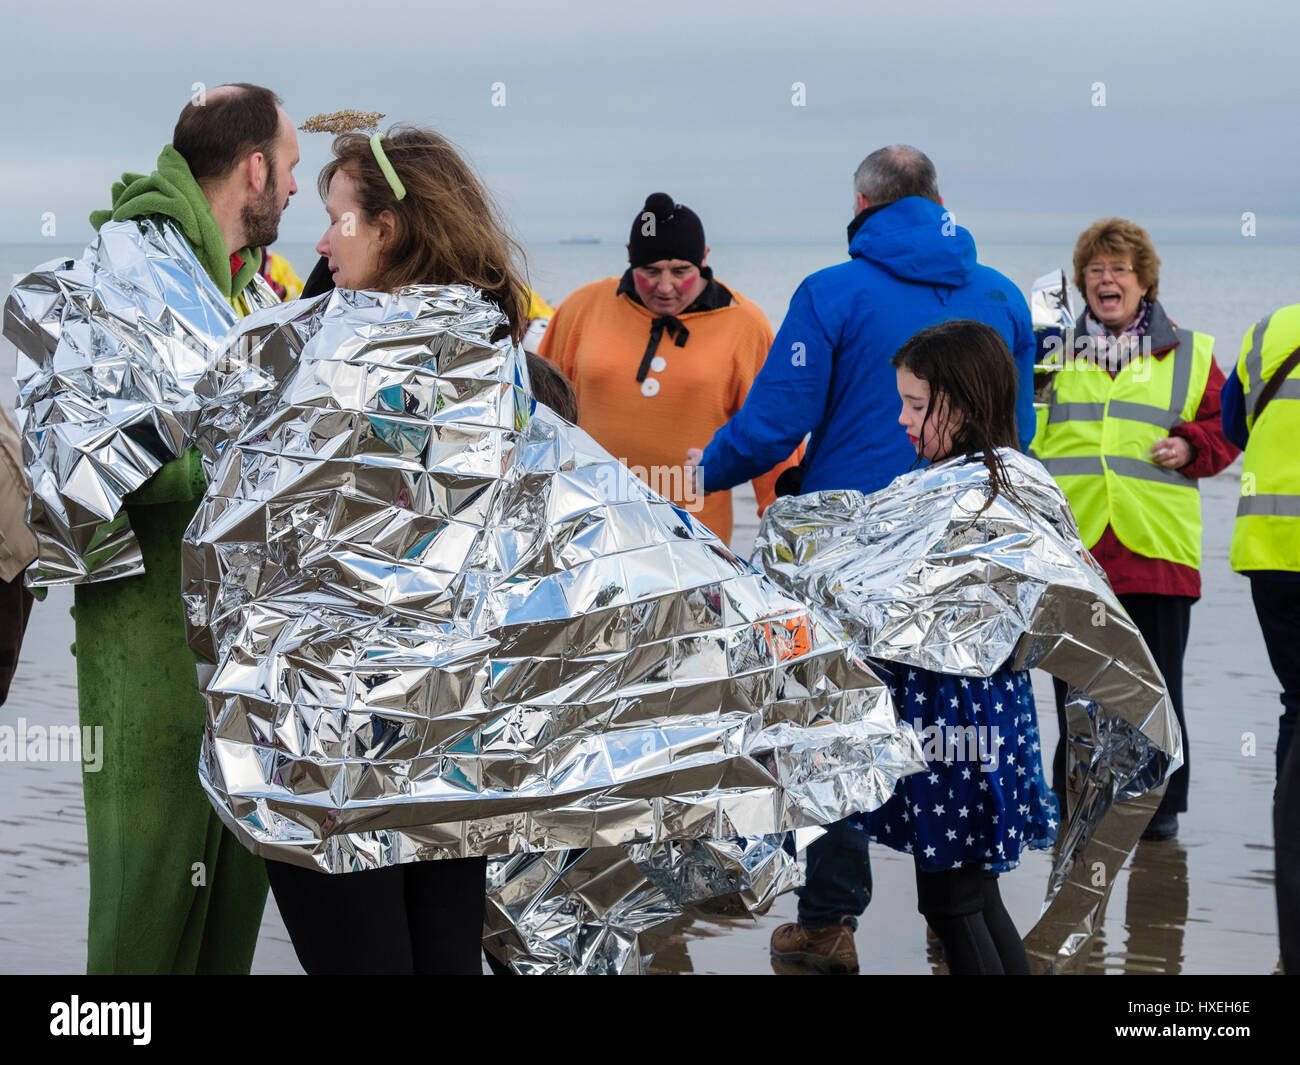 Wet swimmers wrapped in thermal foil emergency blankets to get warm after a sponsored swim in the sea for charity - Stock Image